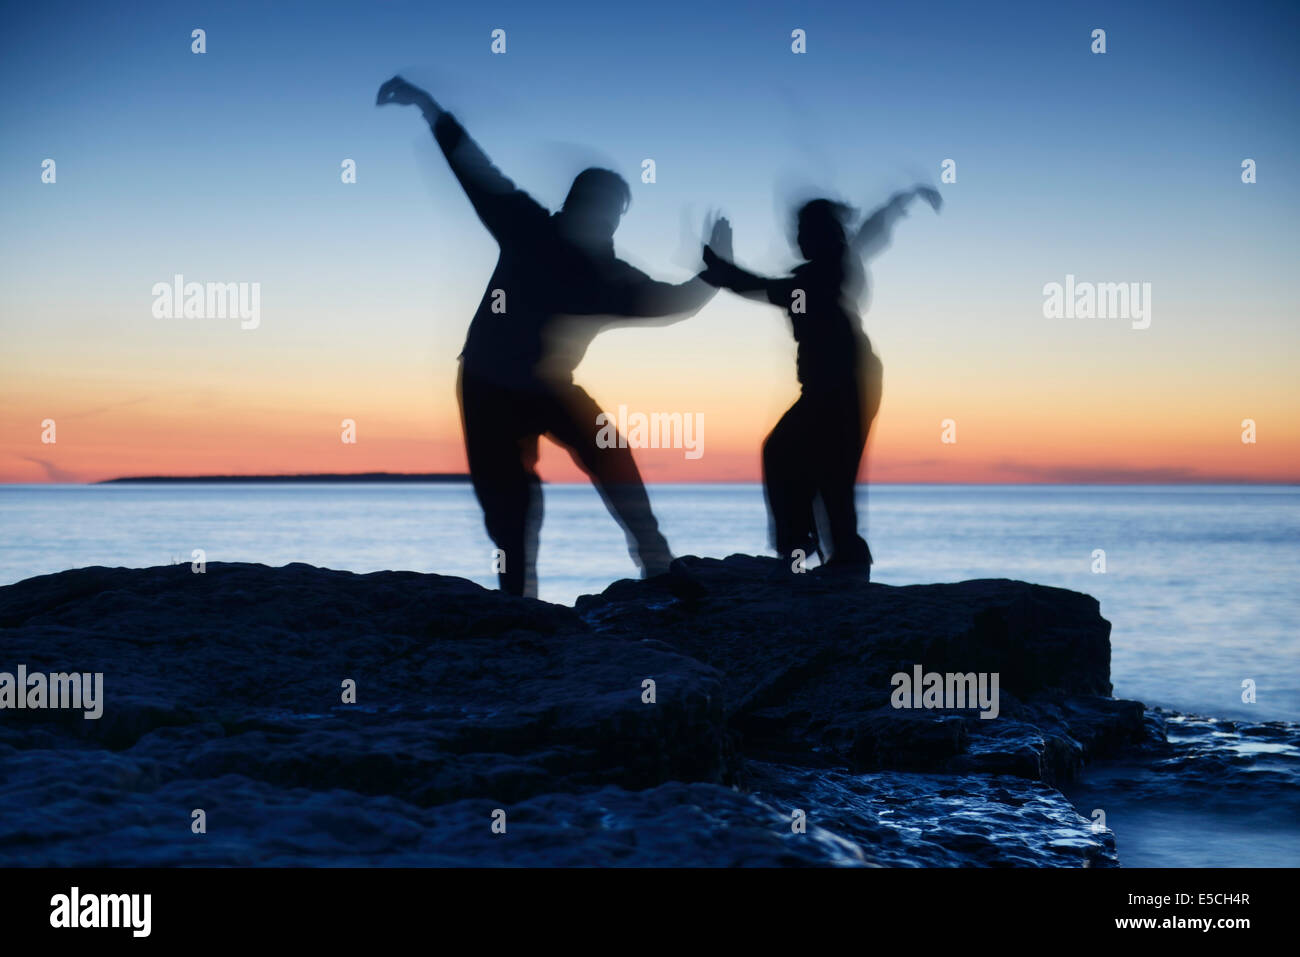 Two blurred silhouettes of people practicing martial arts at dusk in the nature over colorful twilight sky - Stock Image